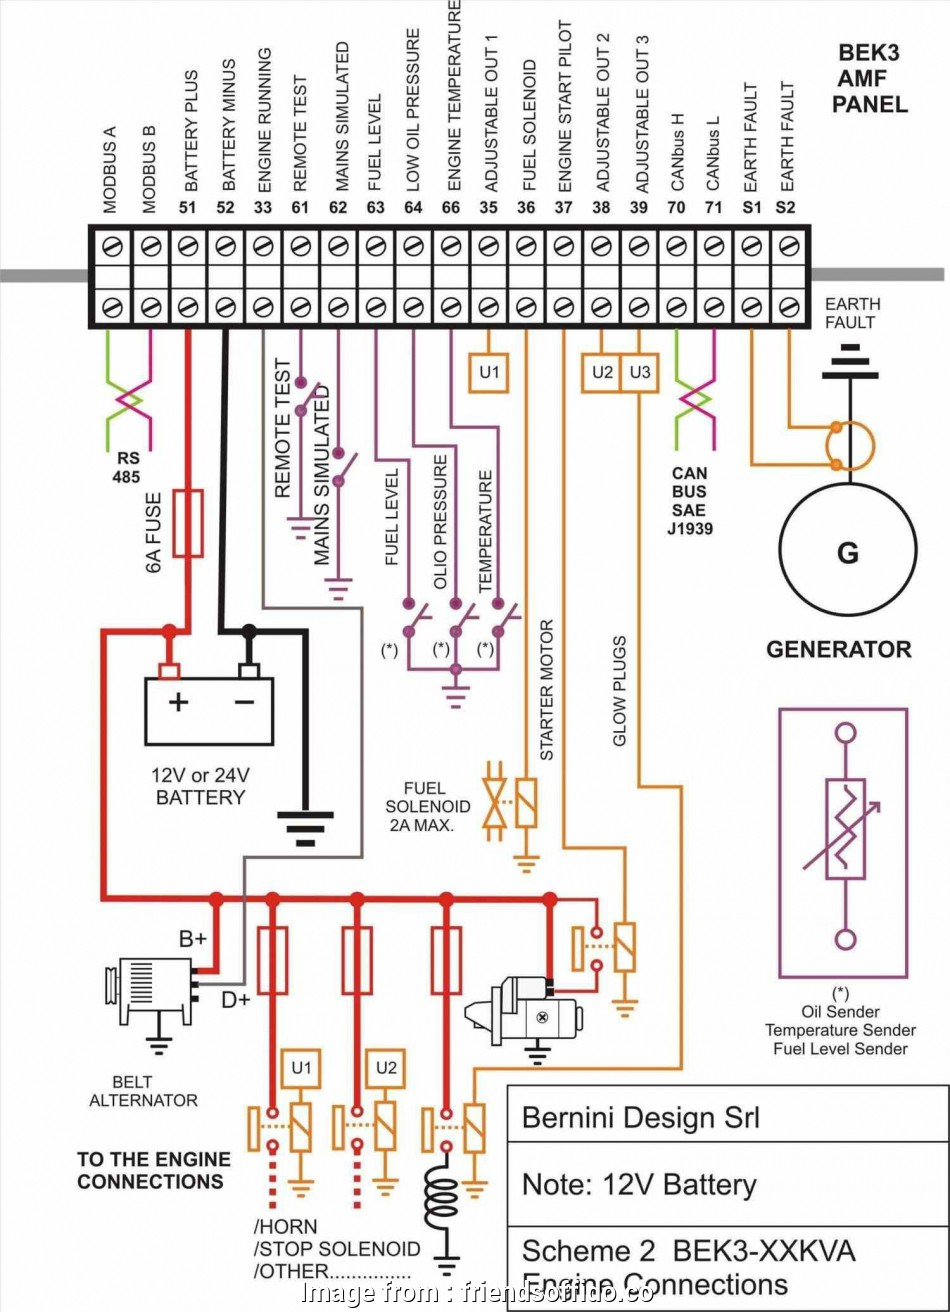 Trane Thermostat Wiring Diagram from tonetastic.info